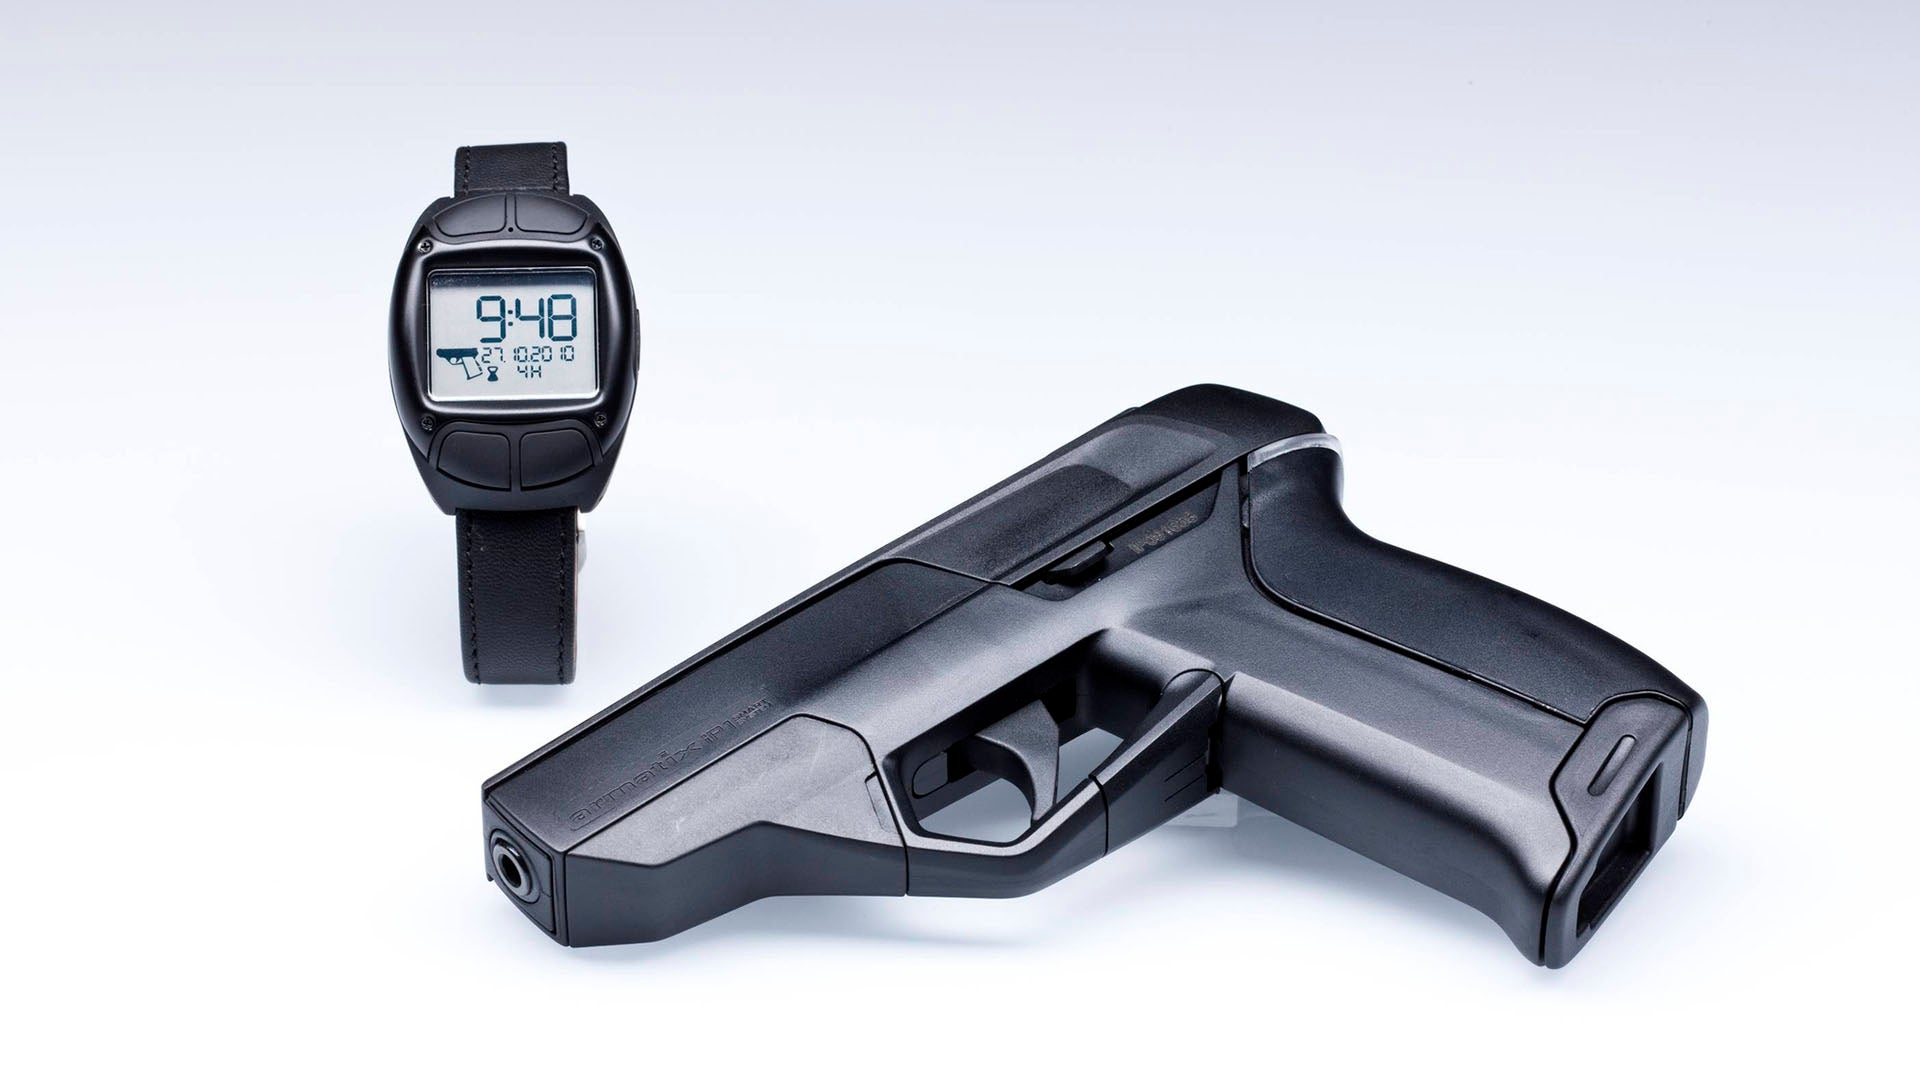 Smart Guns Are Here, But No One Wants To Buy Them